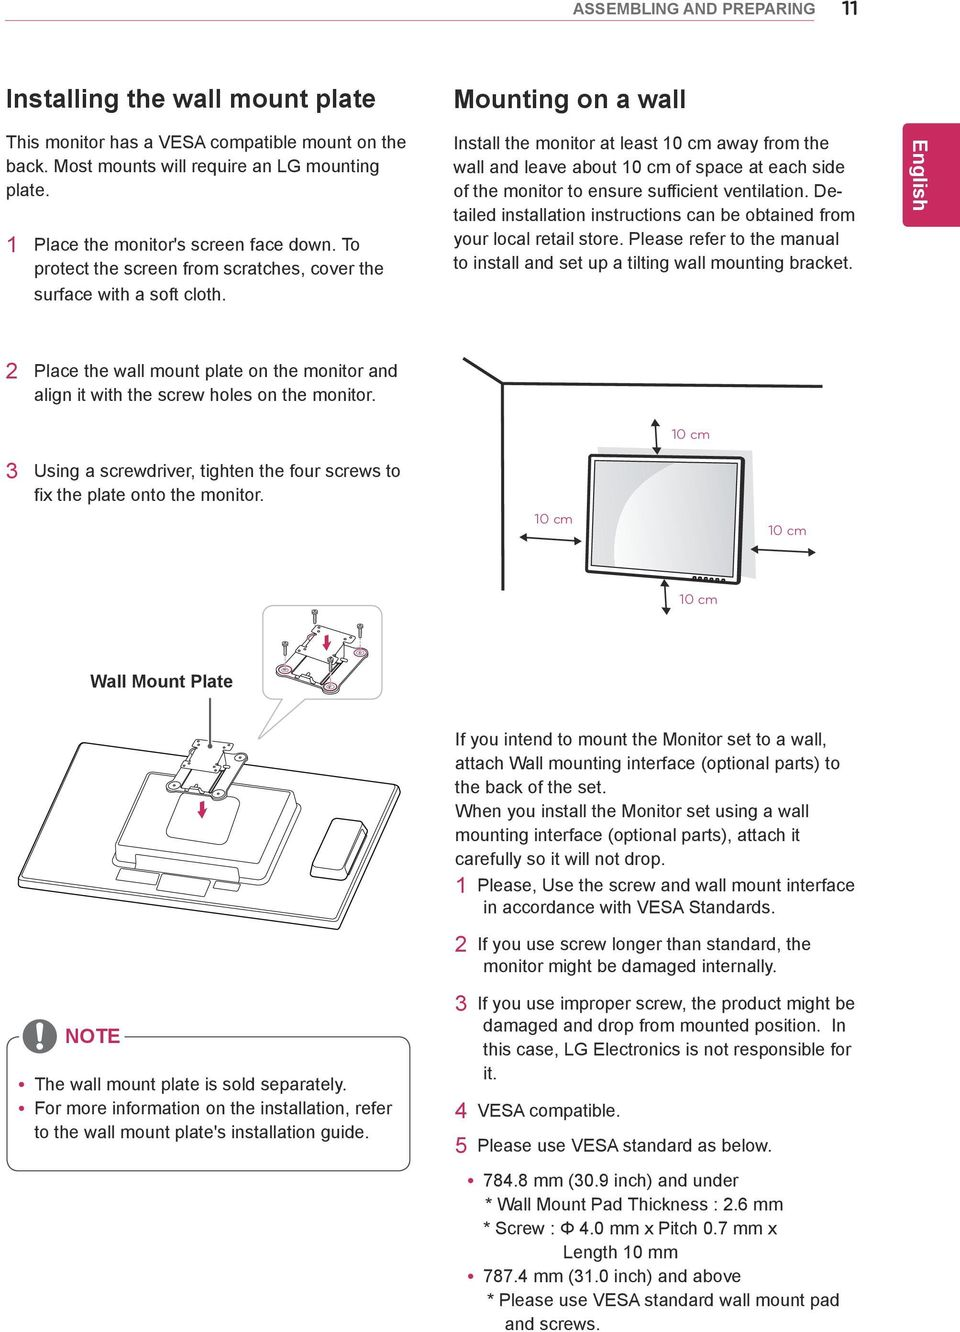 Install the monitor at least 10 cm away from the wall and leave about 10 cm